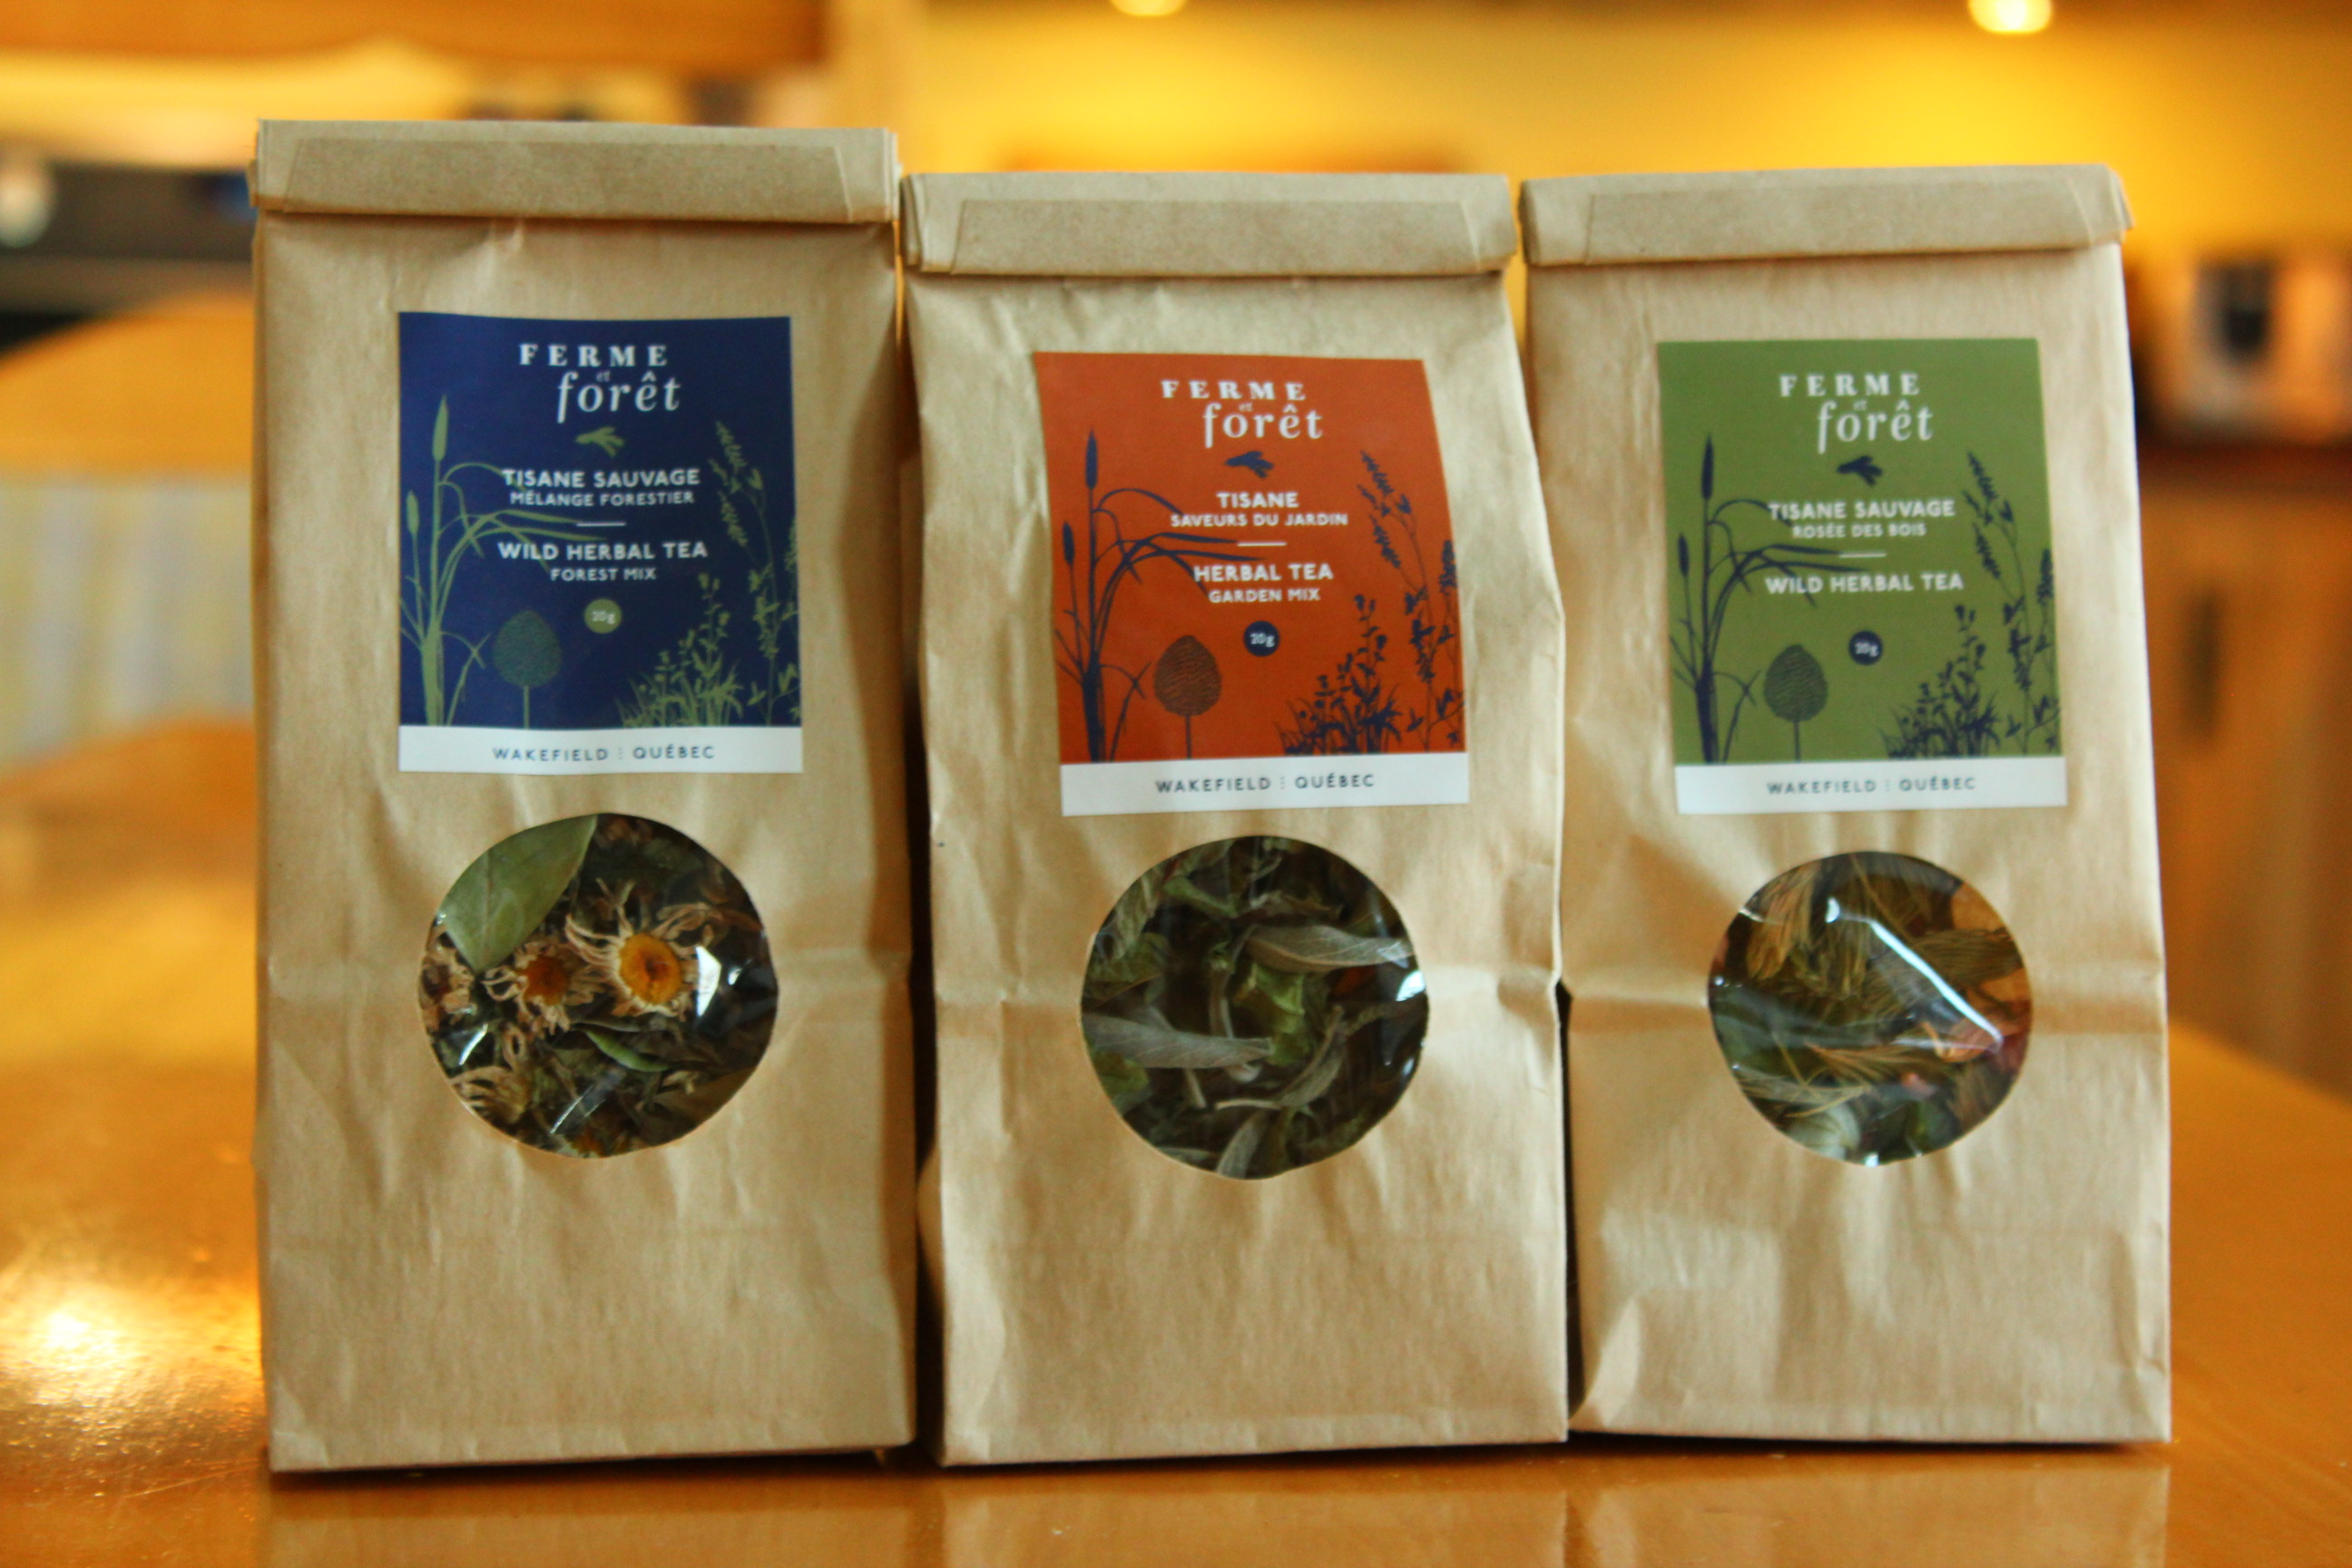 Wild Herbal Teas | Ferme et Forêt